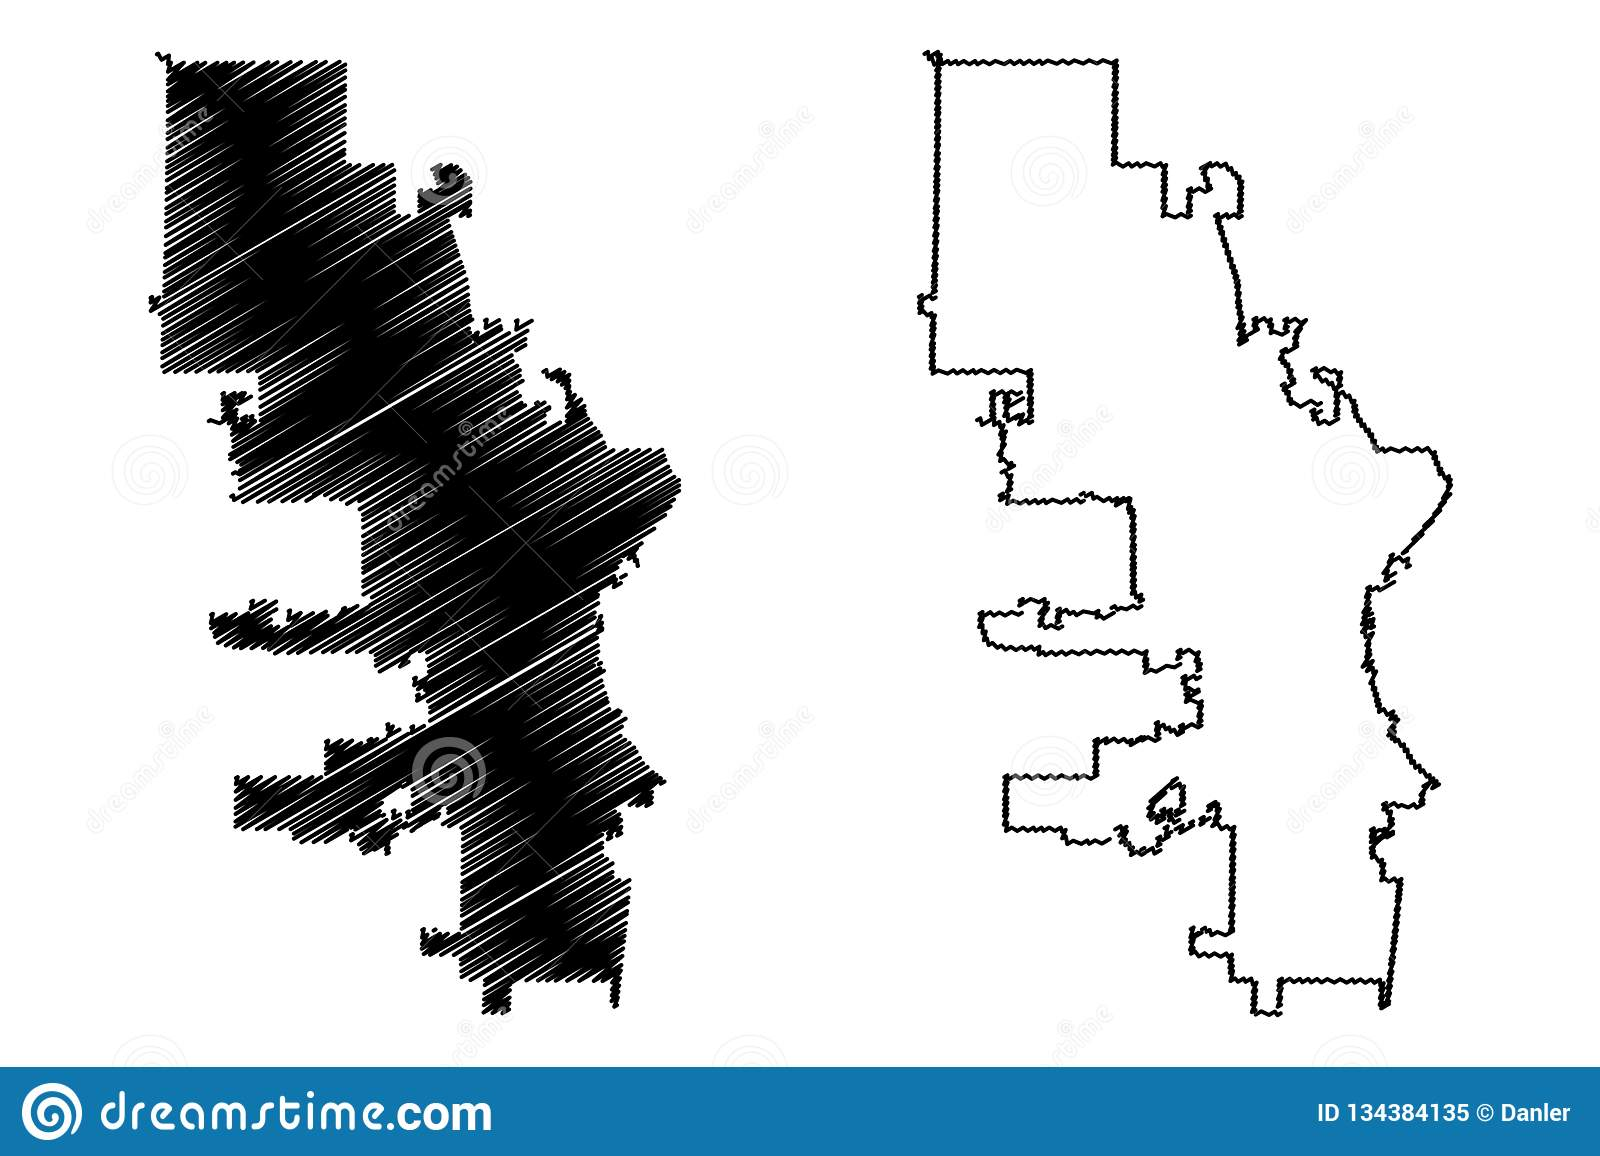 Baltimore City map vector stock vector. Illustration of abstract ...